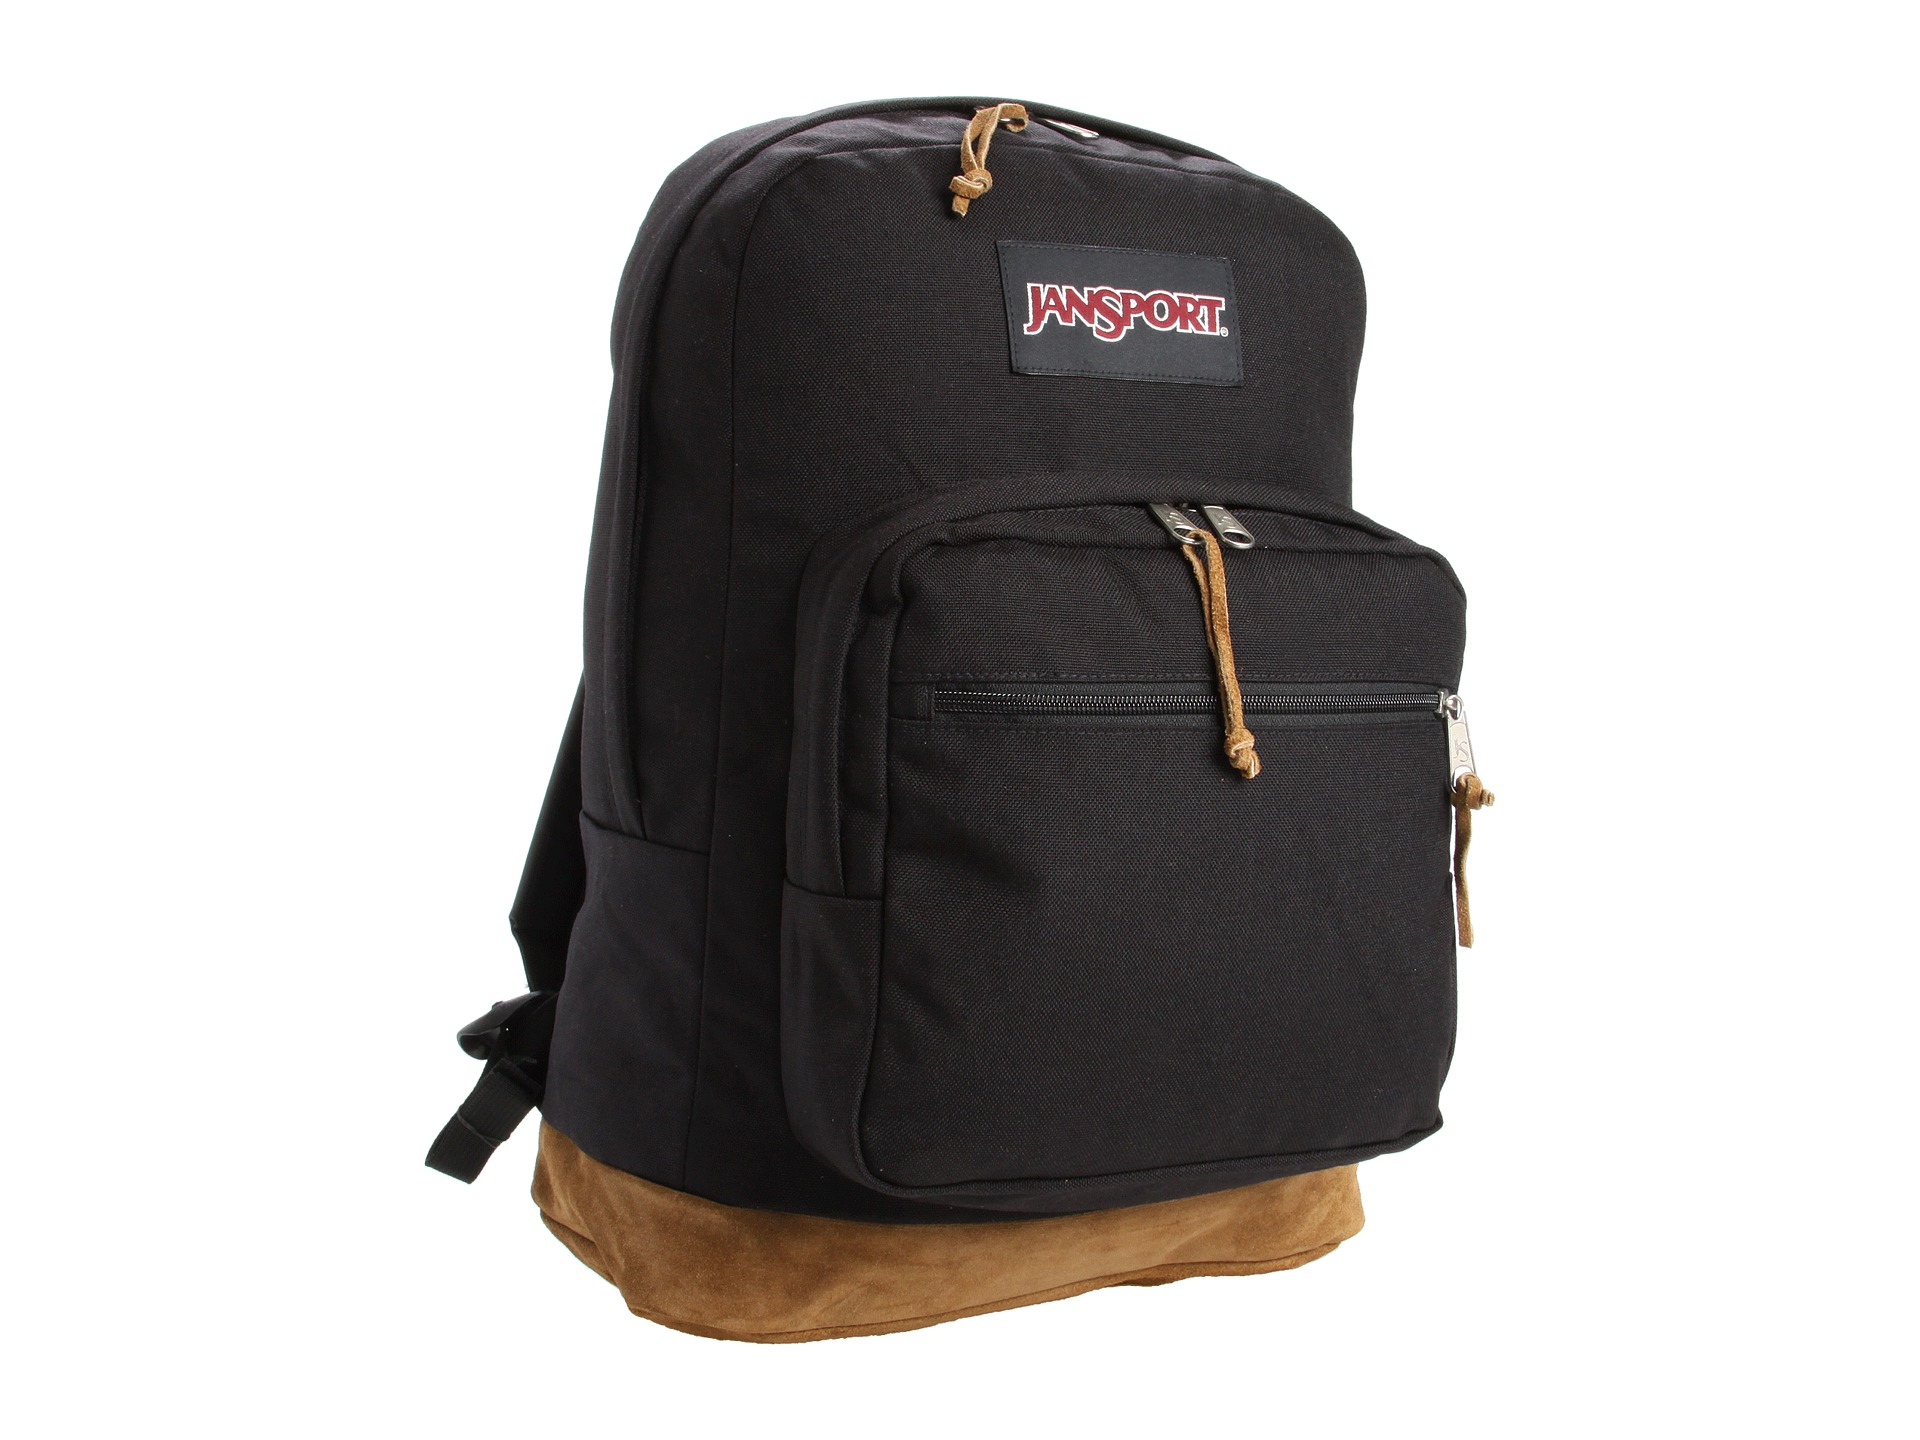 JanSport Promo Code & Sale